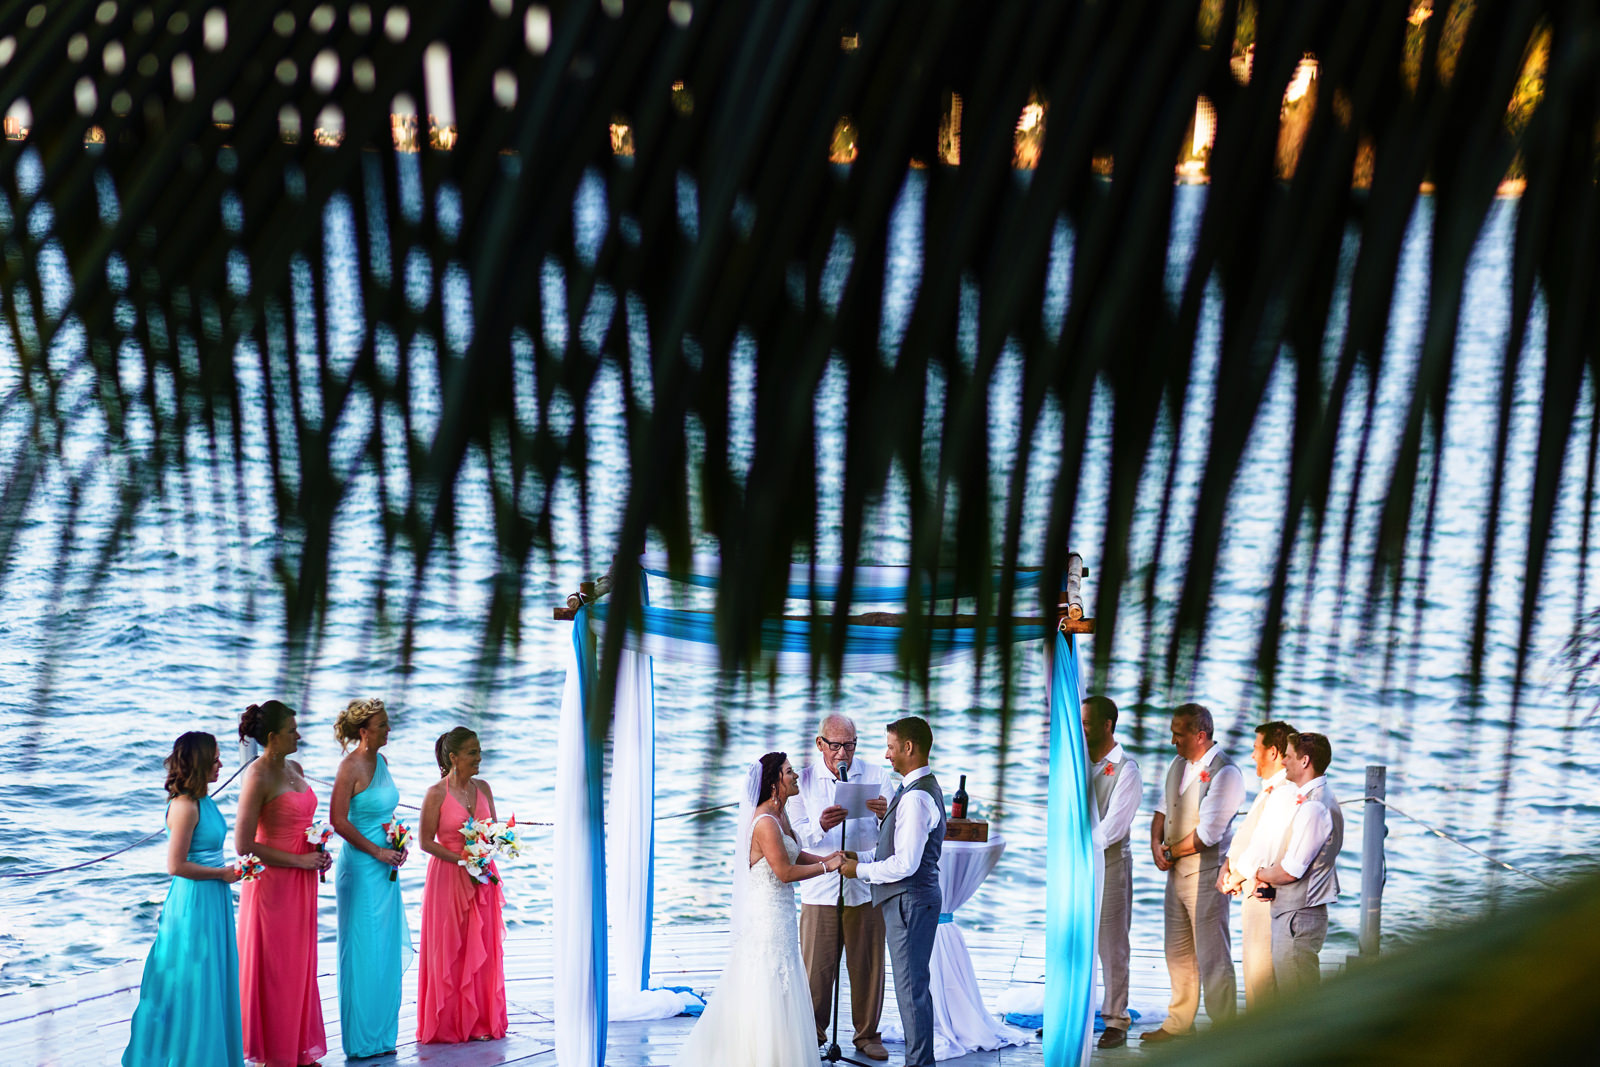 Destination wedding ceremony in progress near the ocean through a palm branch